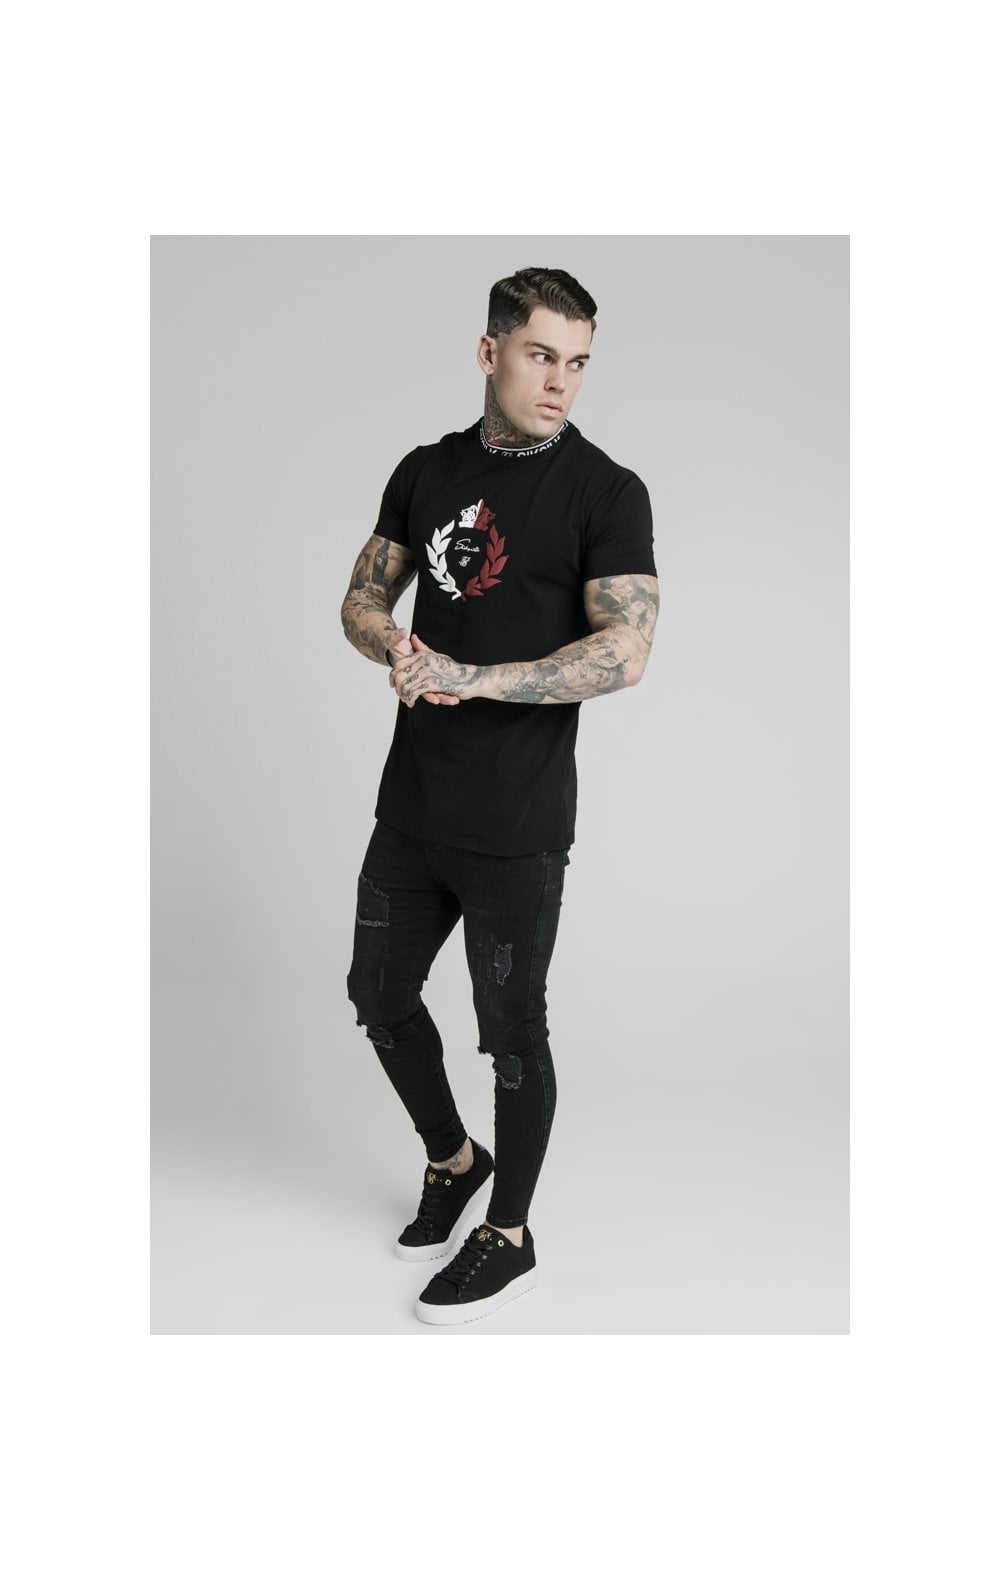 SikSilk S/S Tape Collar Prestige Tee - Black (4)